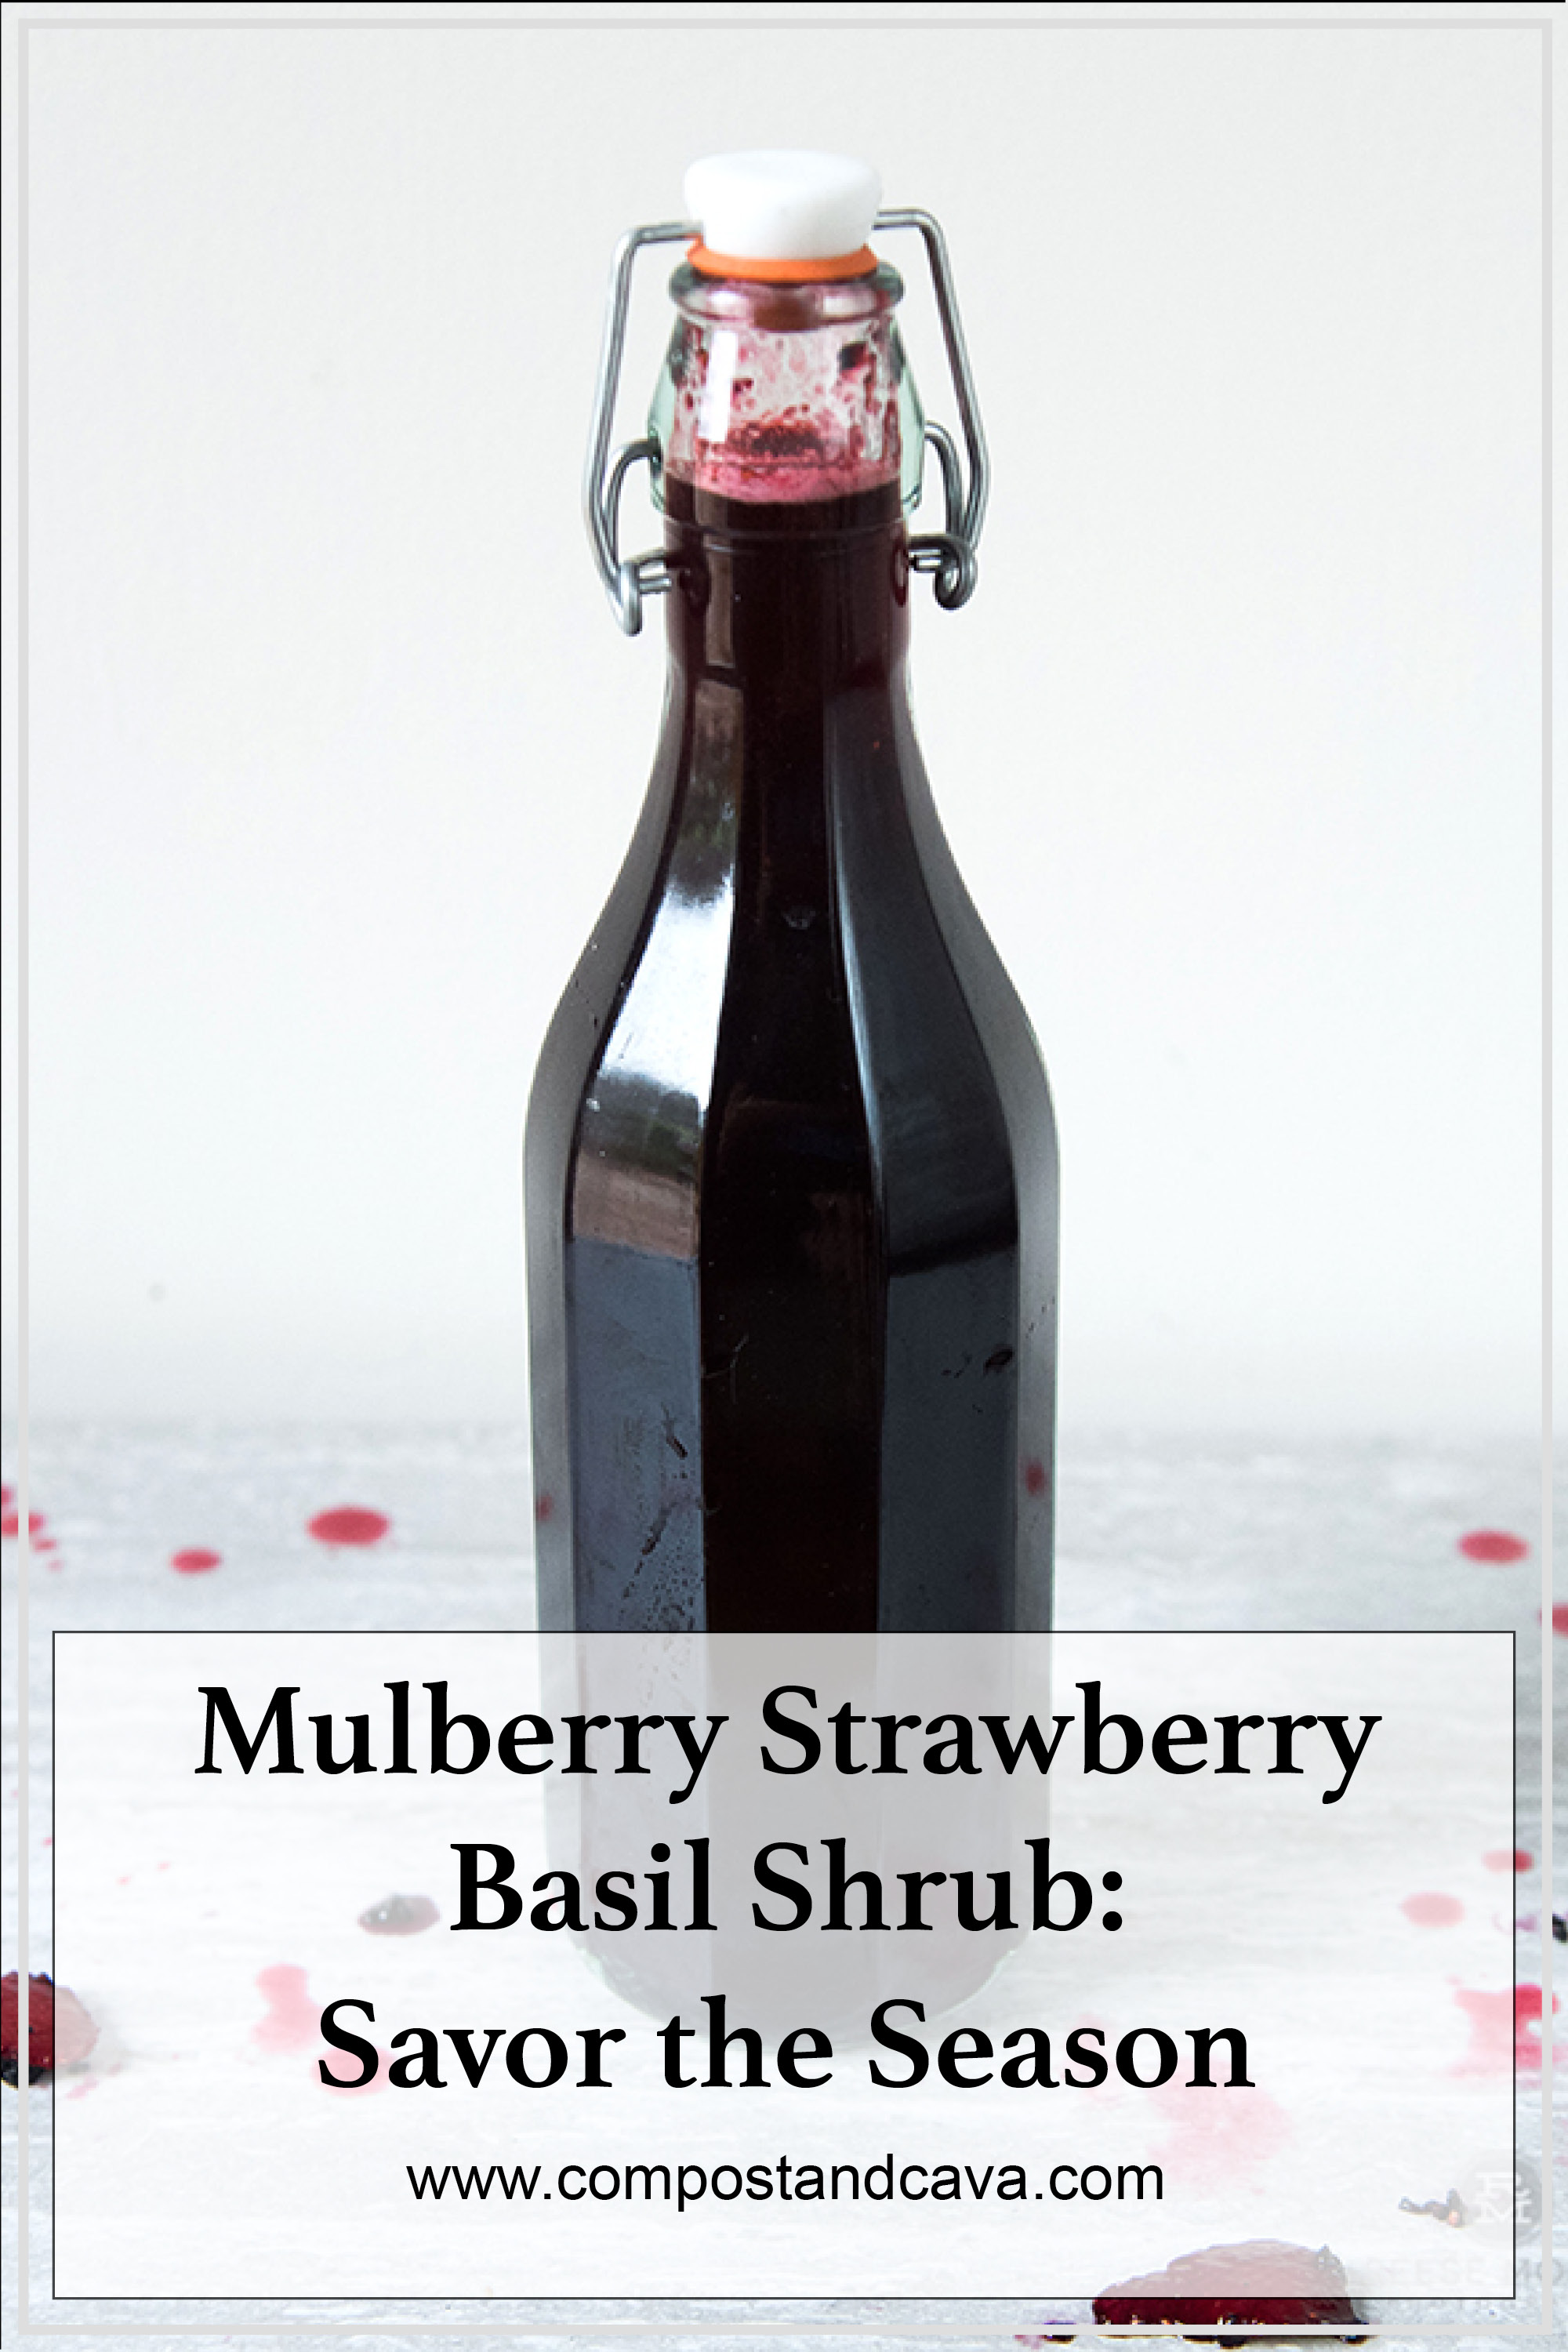 Mulberry Strawberry Basil Shrub: Savor the Season and Eliminate Food Waste